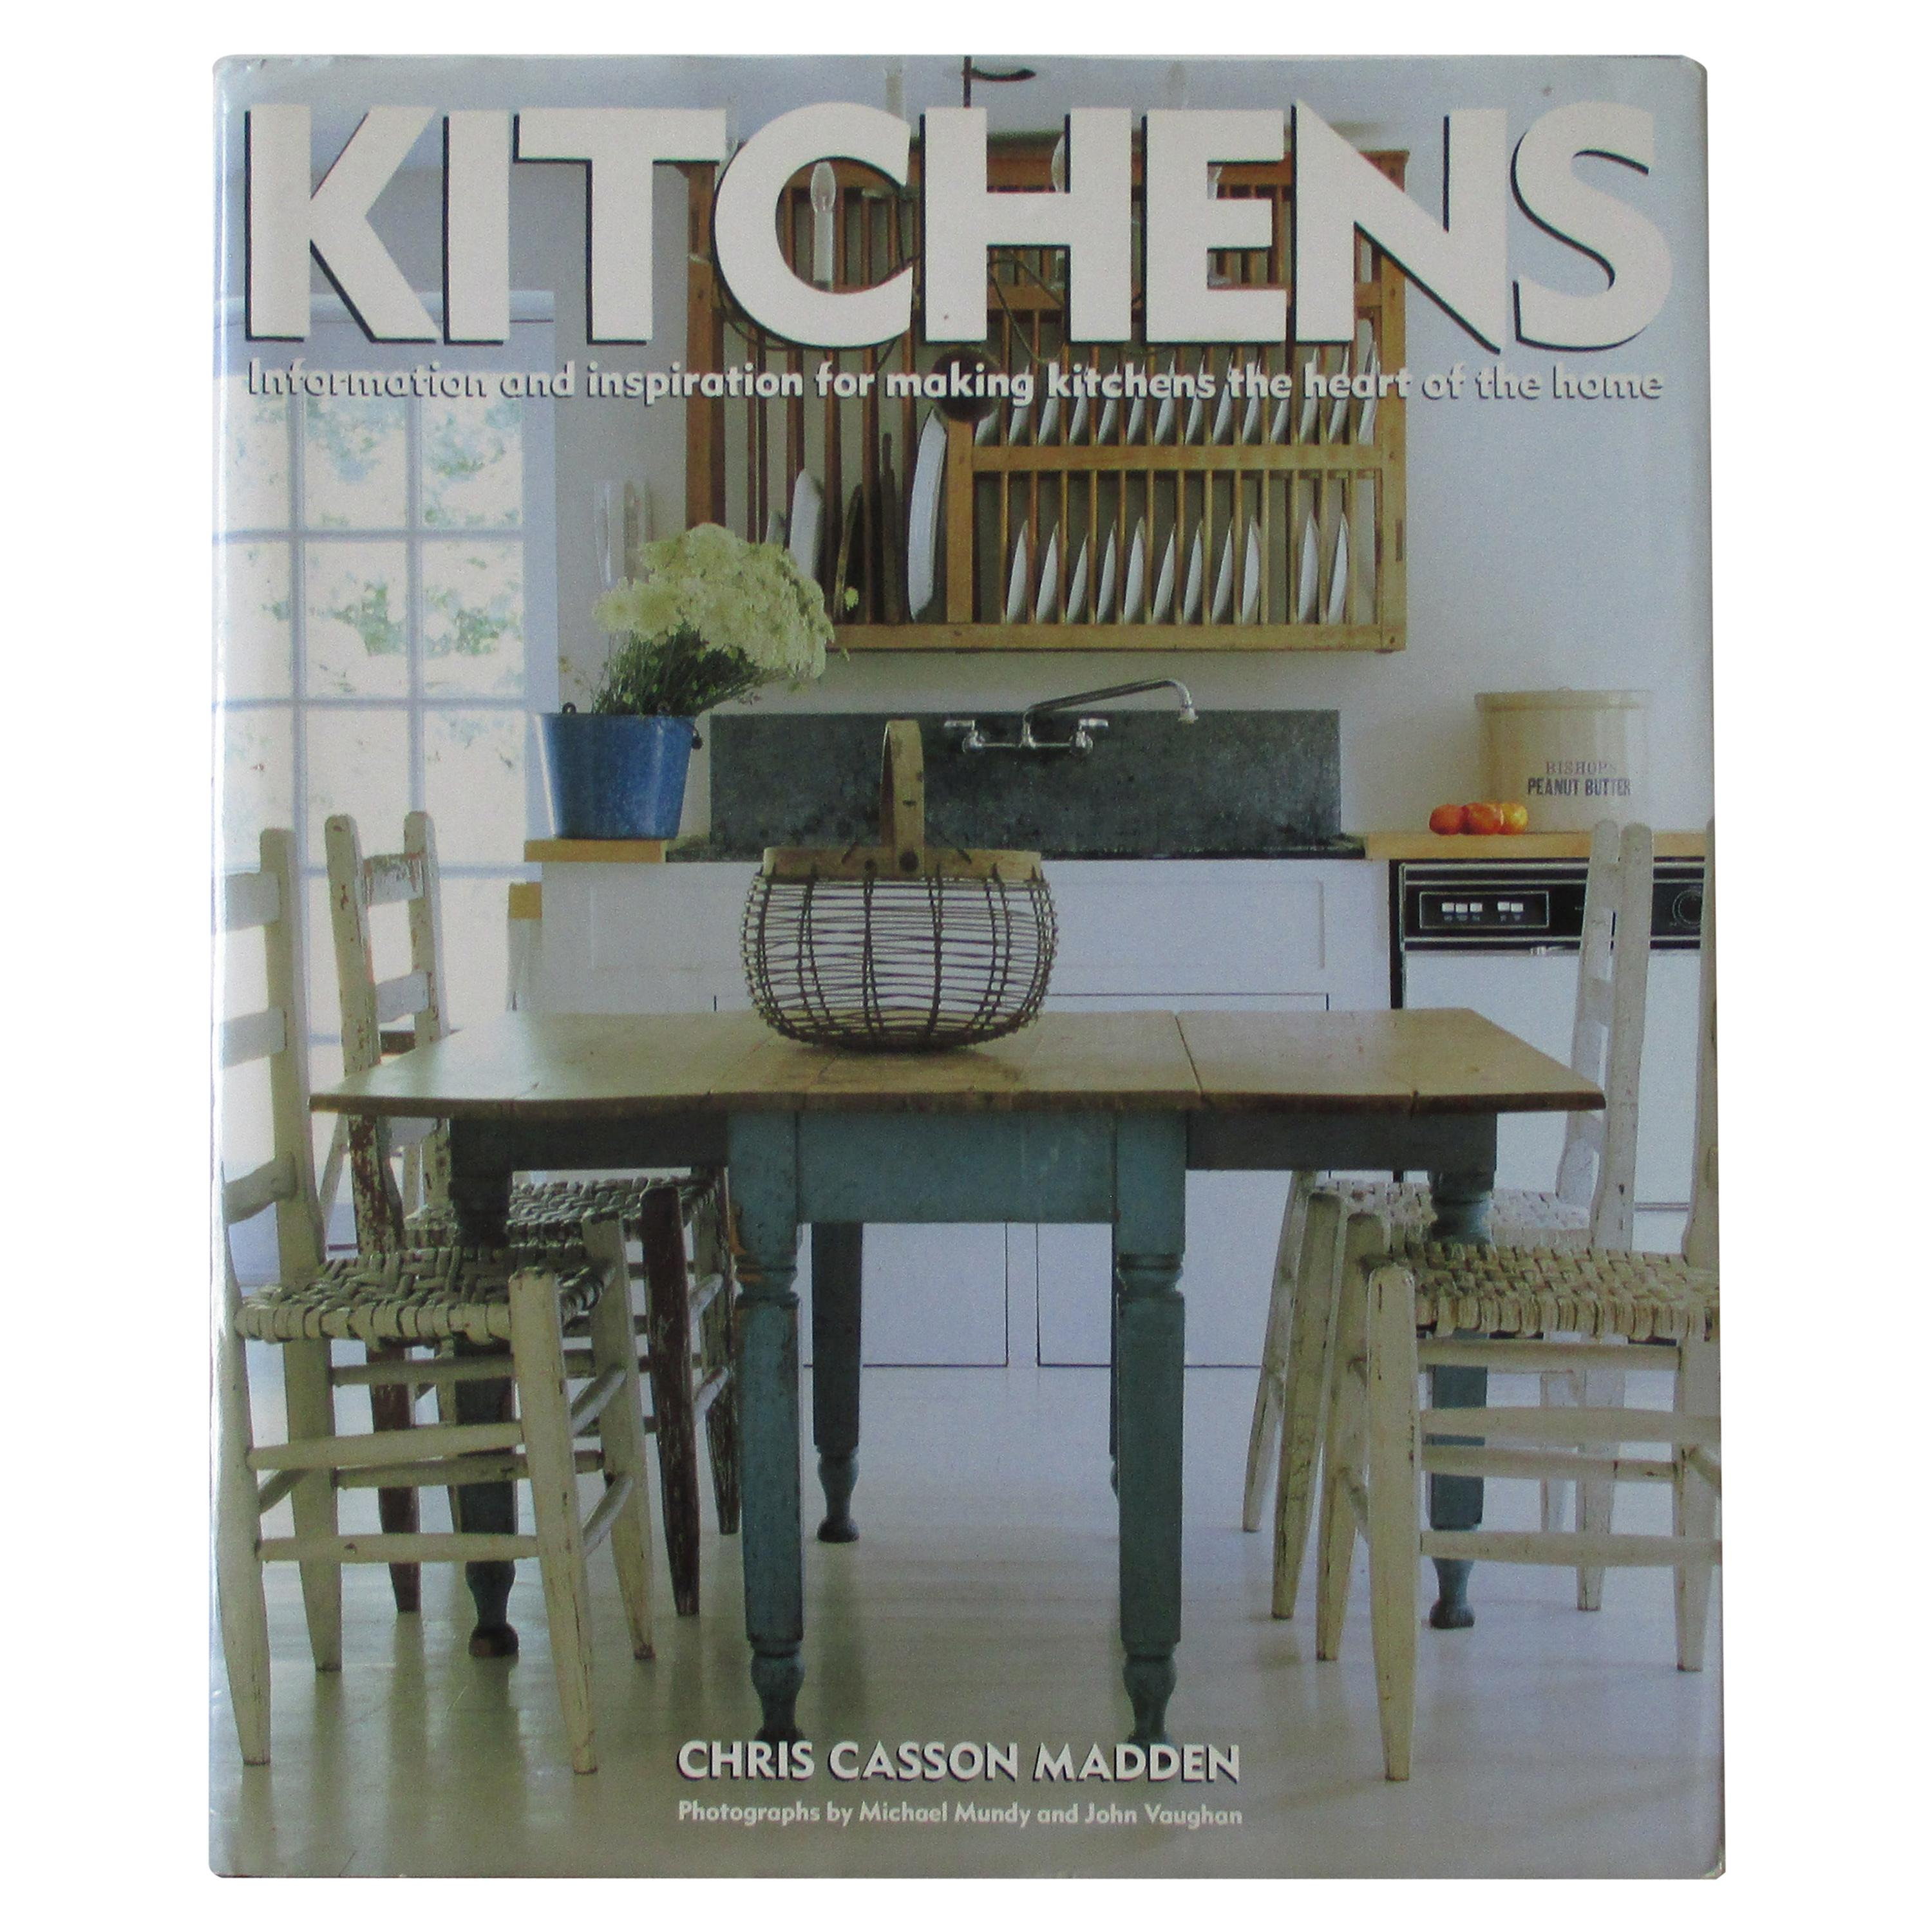 Kitchens: Information & Inspiration for Making the Kitchen the Heart of the Home